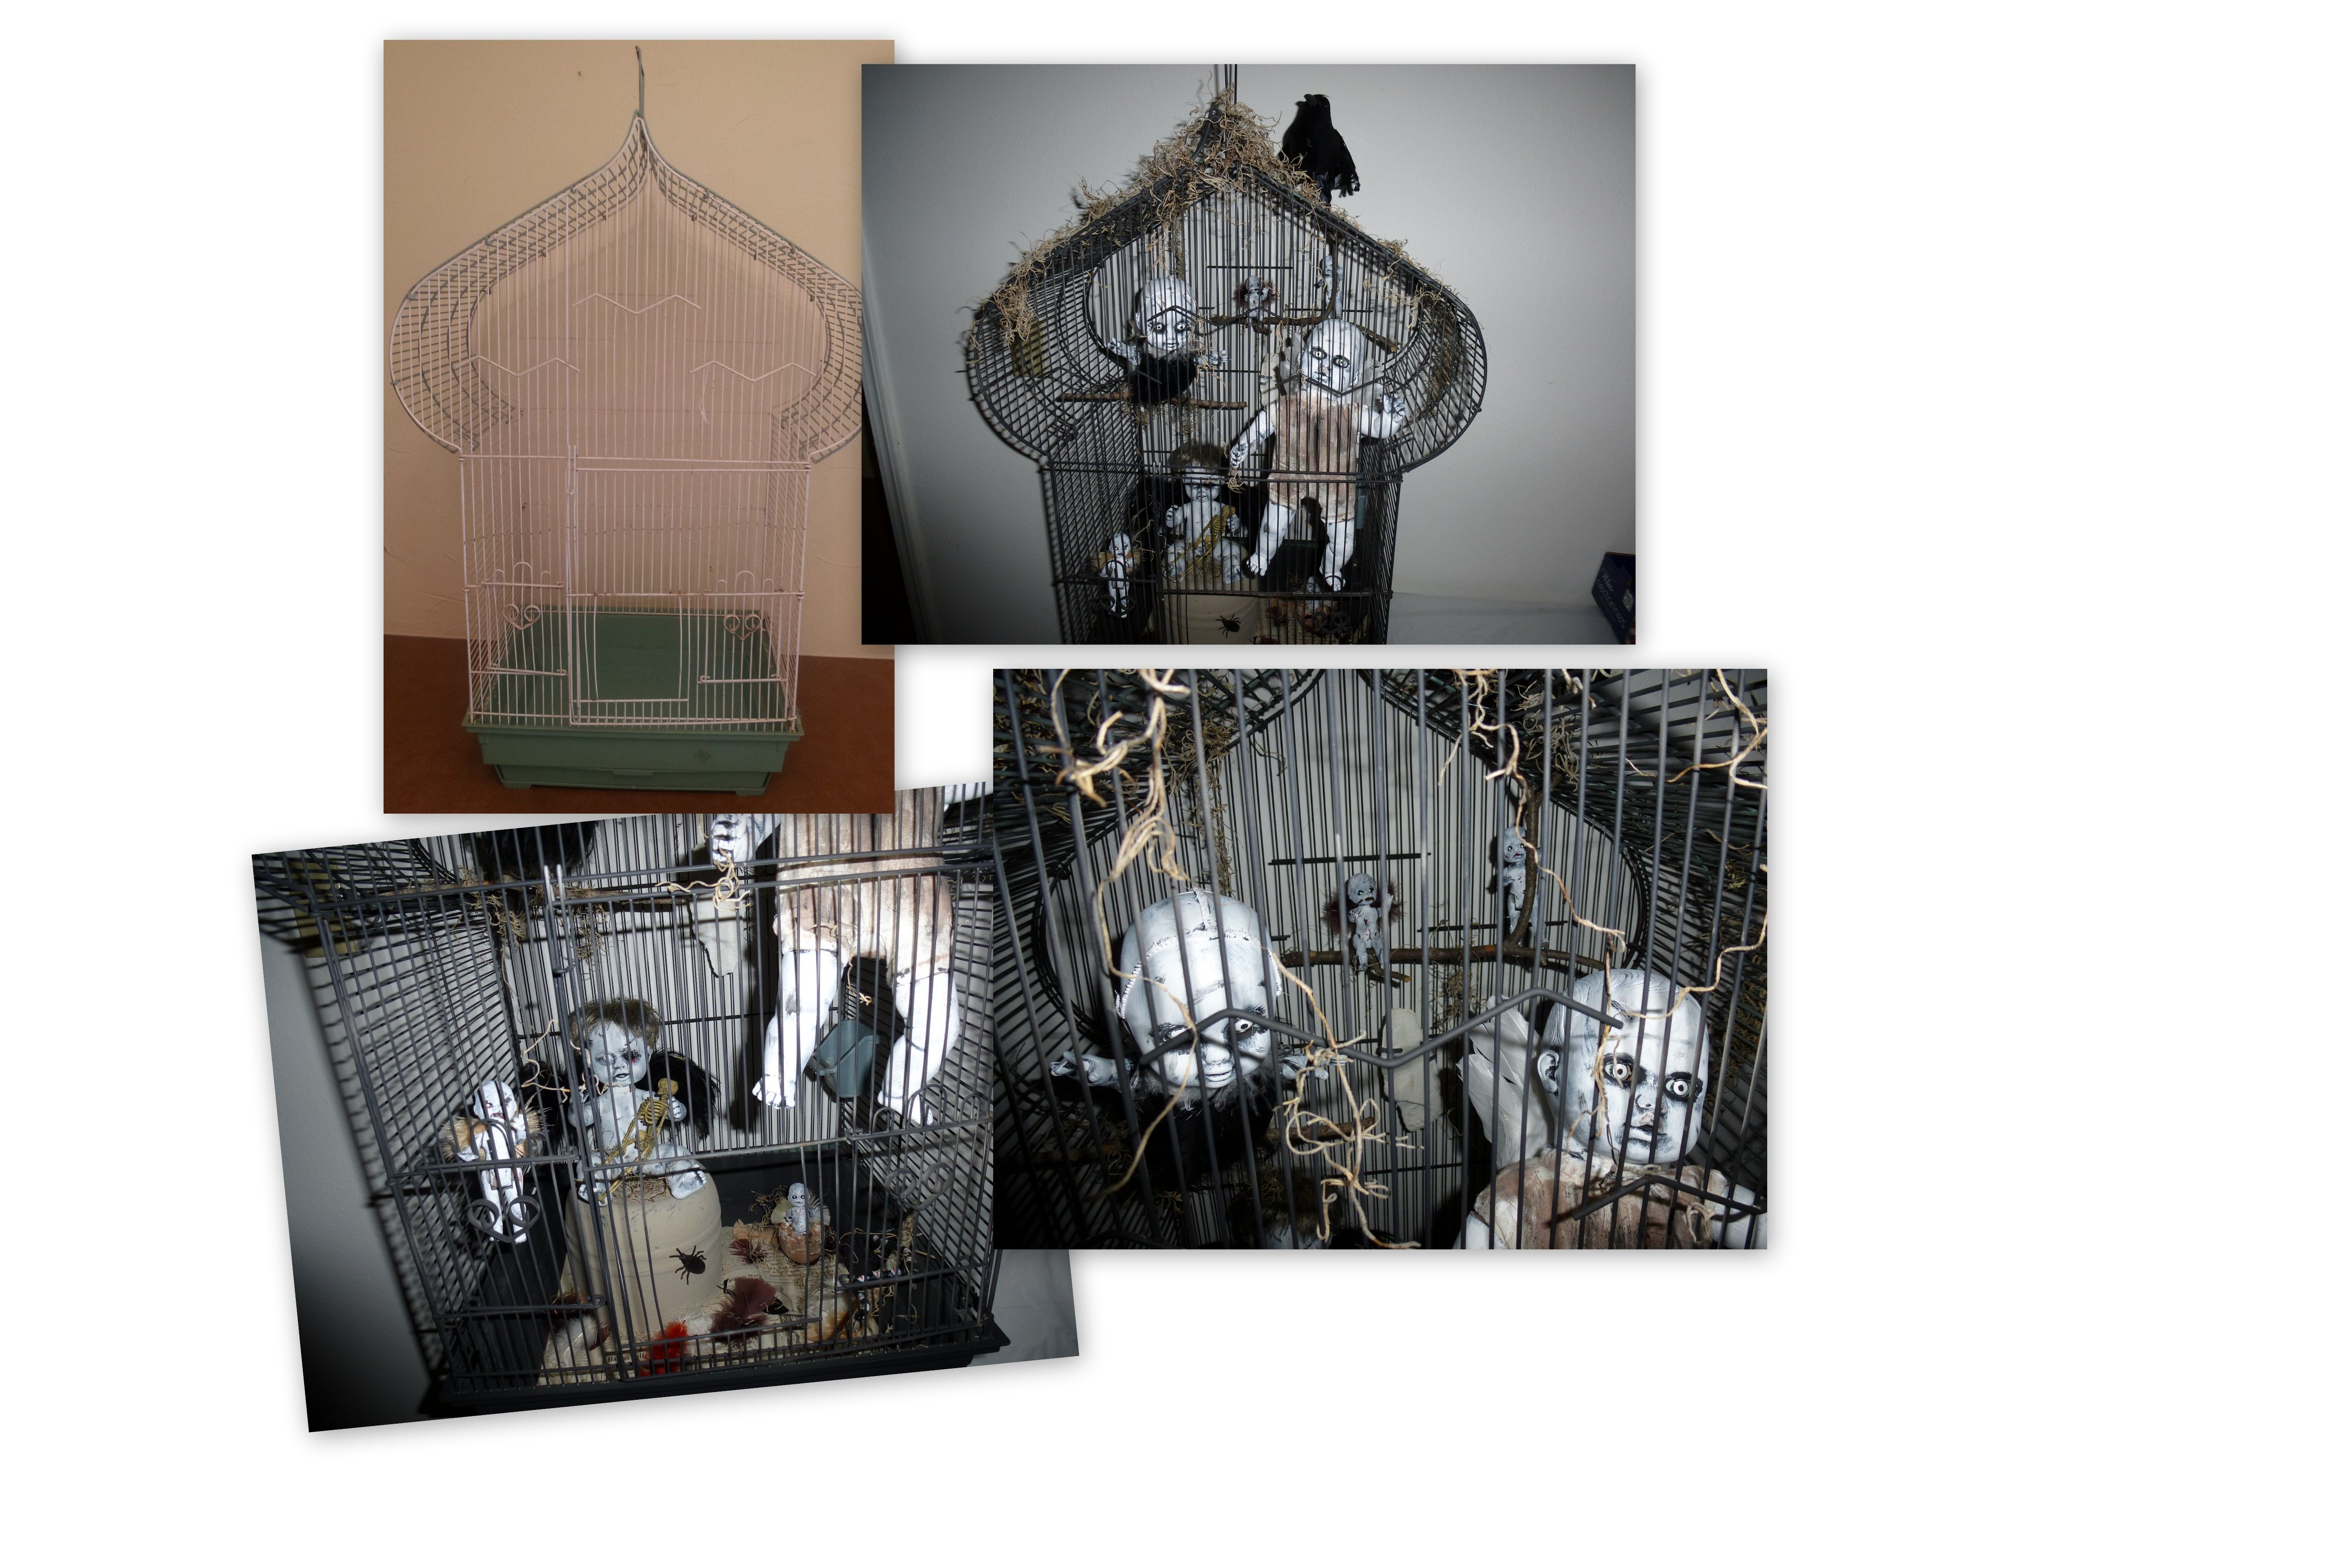 Project: Started with birdcage from flea market and took some of my zombie doll babies that I made, added feathers to them and put them in the cage